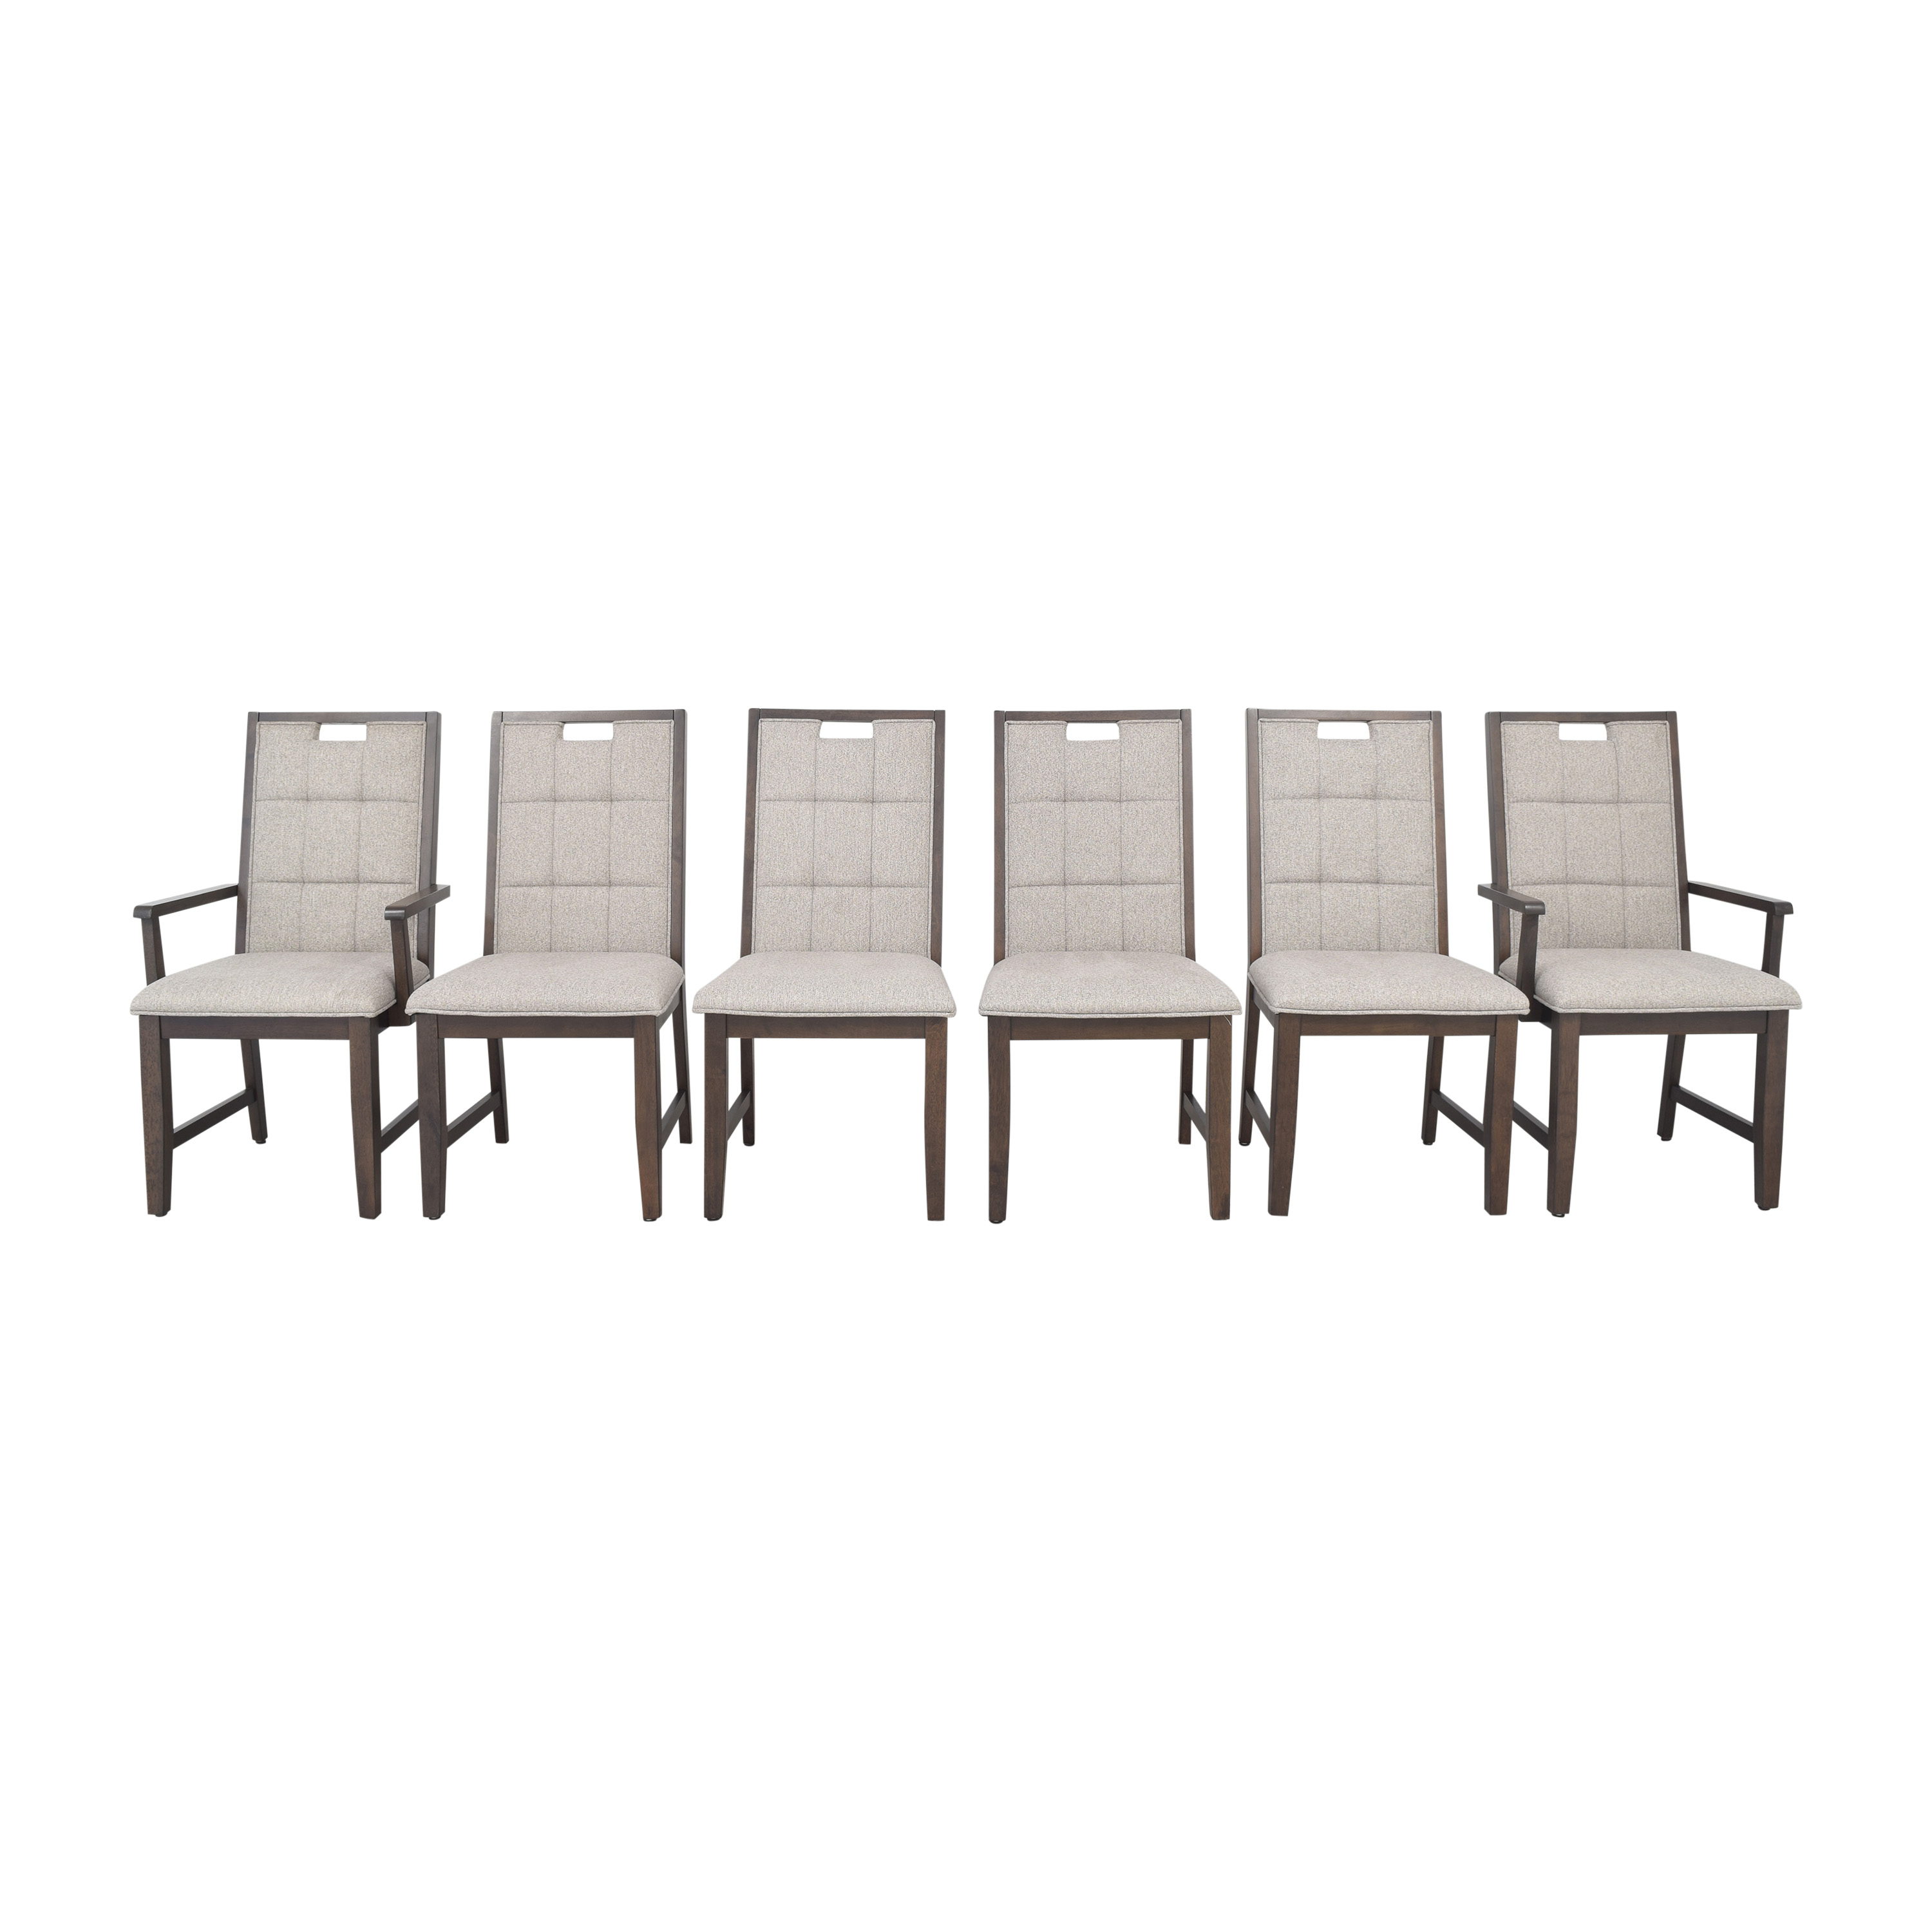 Raymour & Flanigan Raymour & Flanigan Andell Dining Chairs second hand